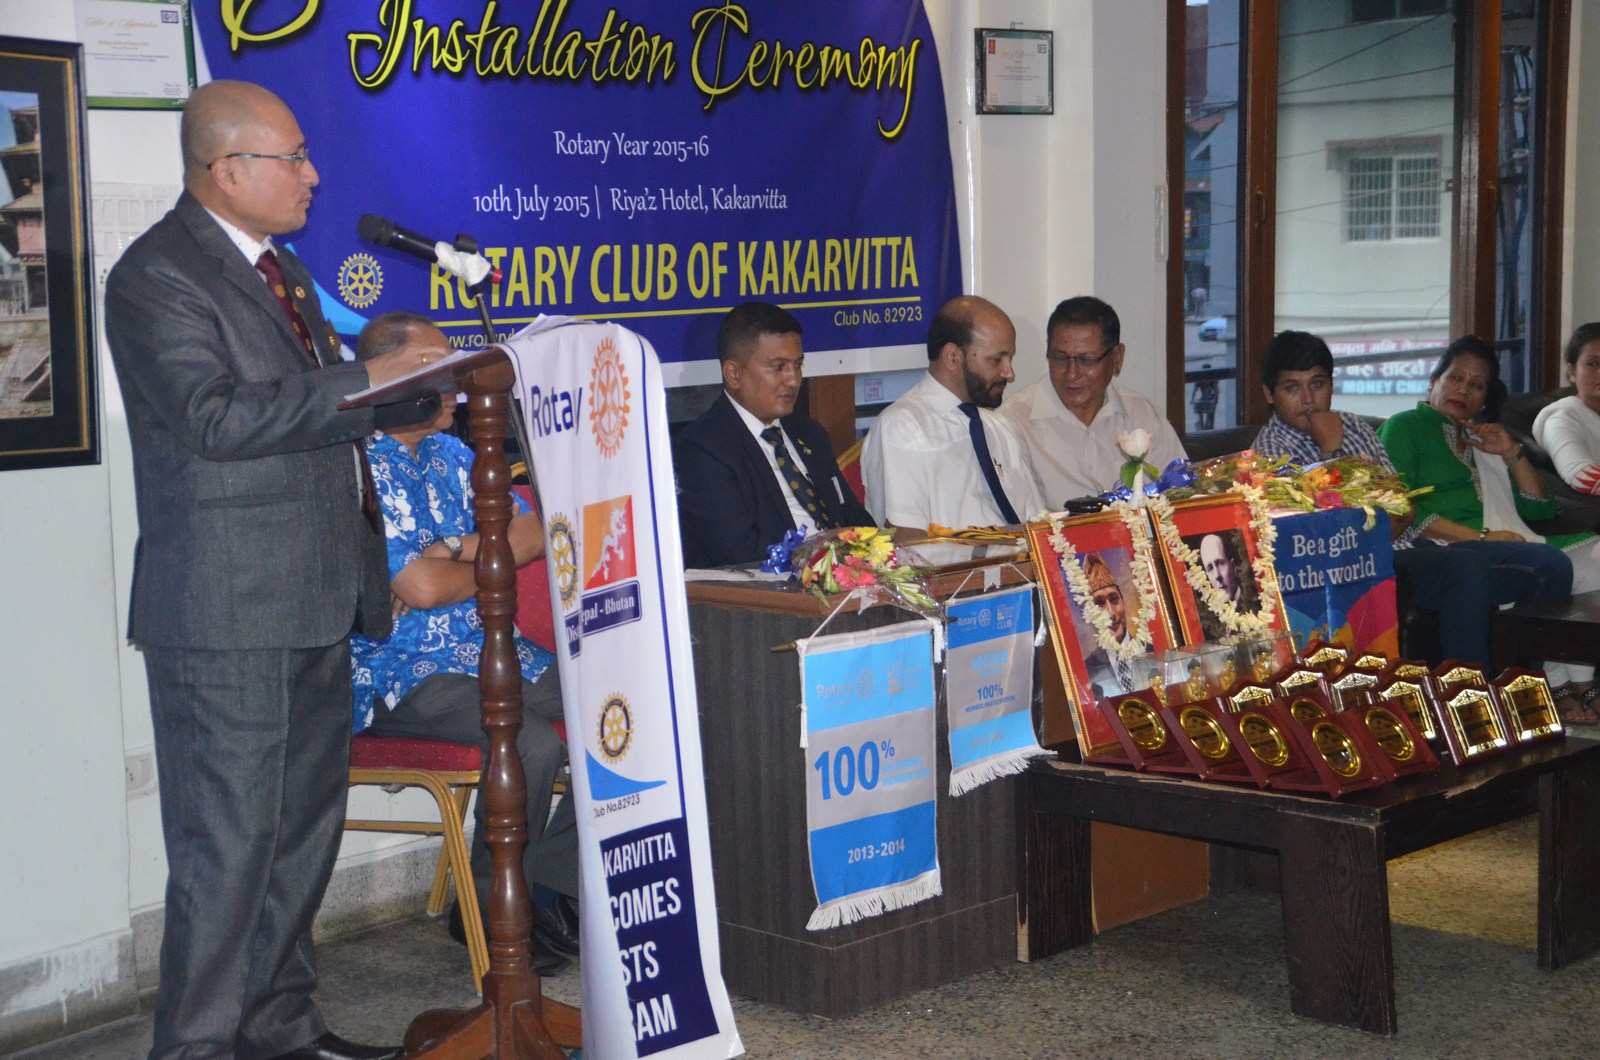 6th Installation Ceremony 2015 16 Rotary Club Of Kakarvitta 6